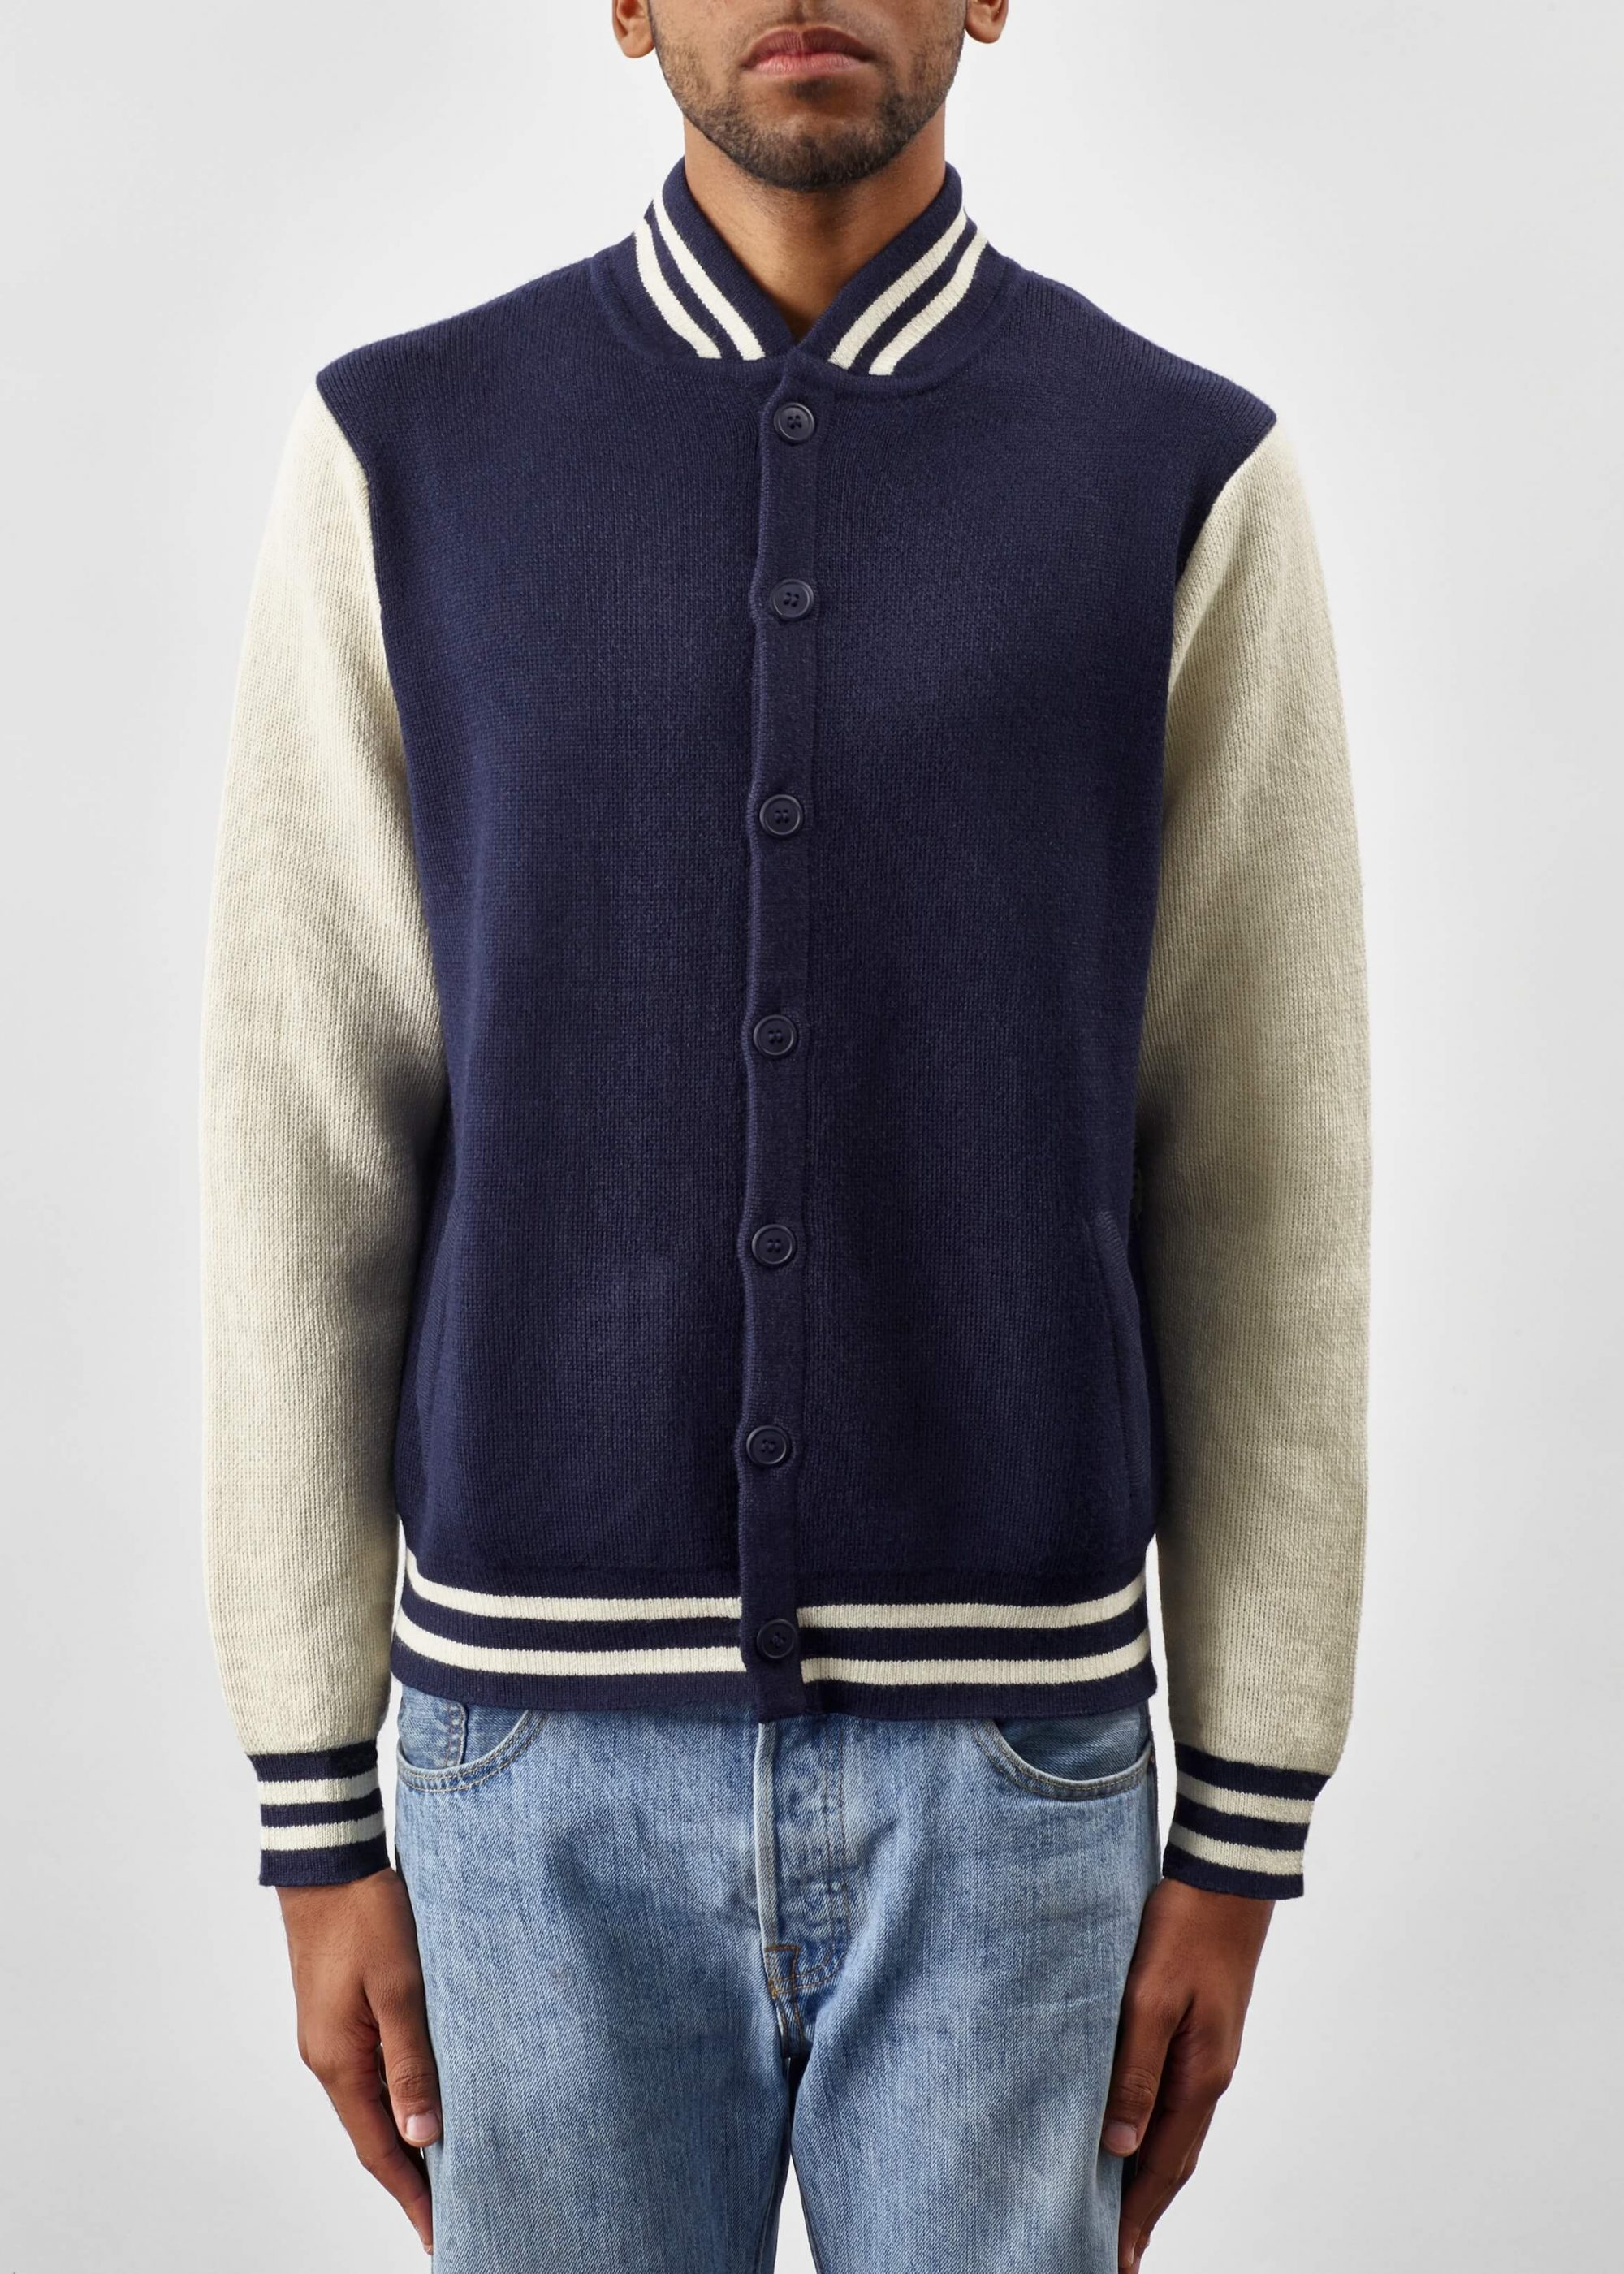 Product image for N° CKI1 Varsity